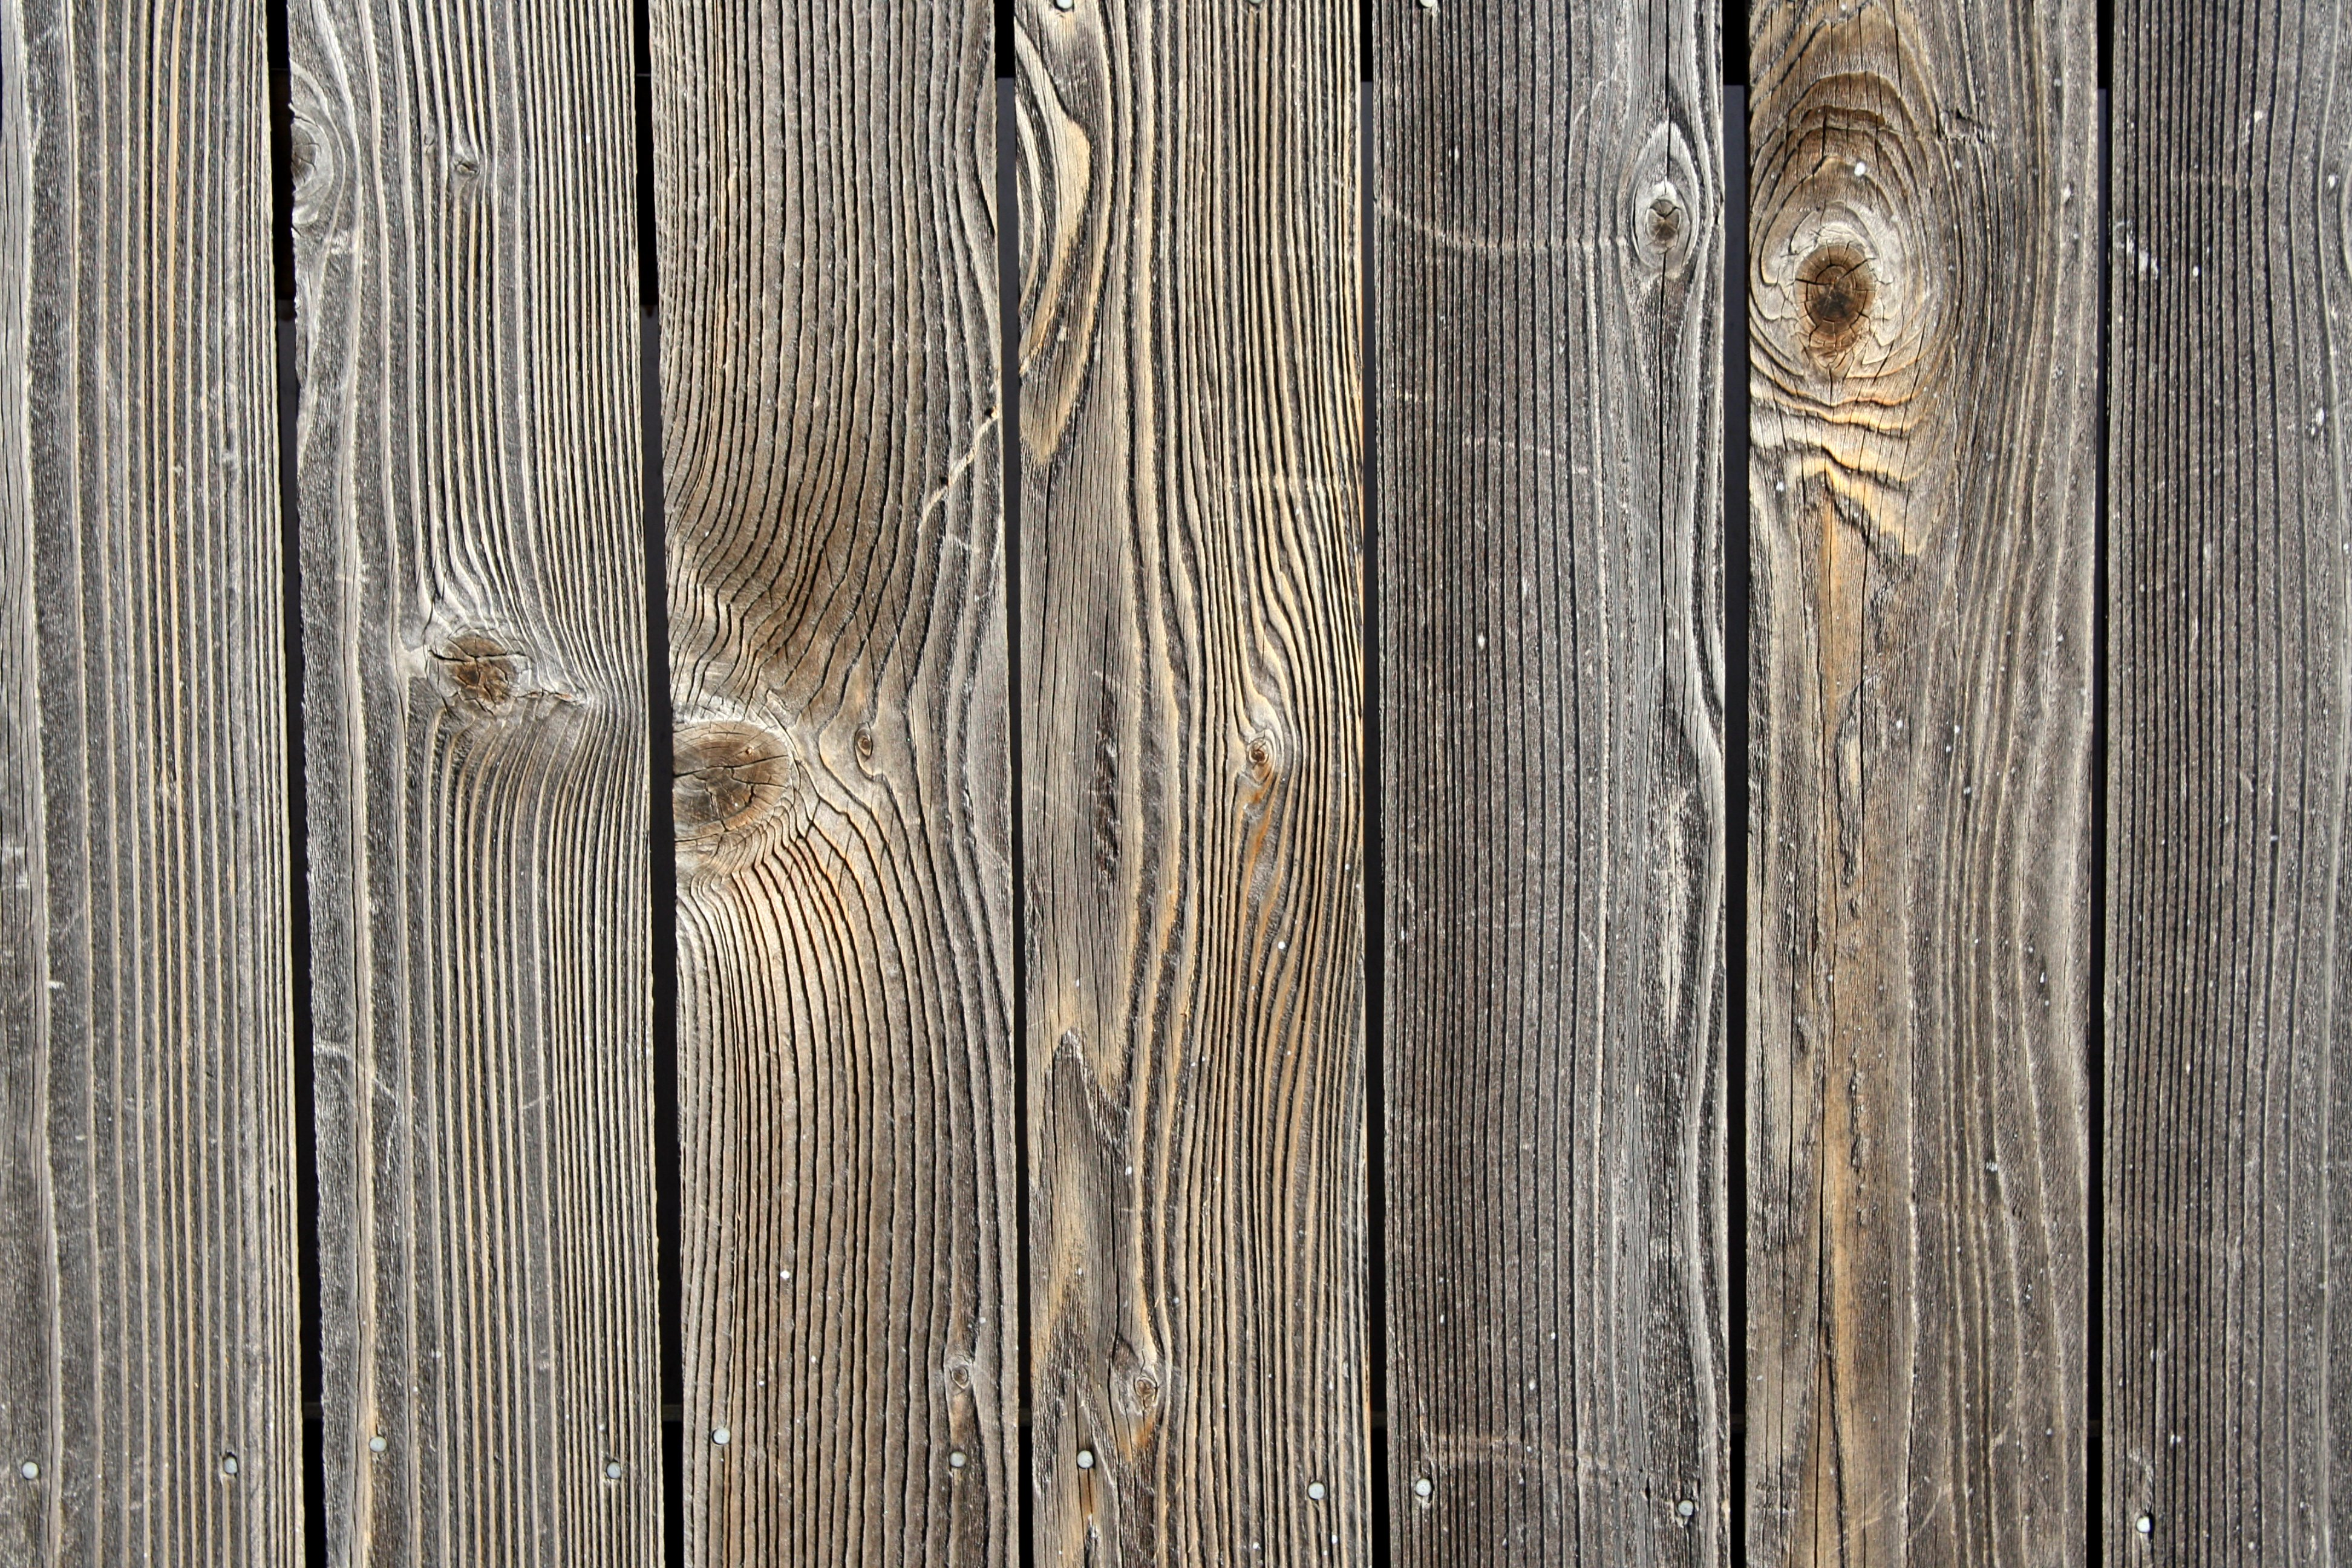 Weathered Wooden Boards Texture Picture   Free Photograph   Photos